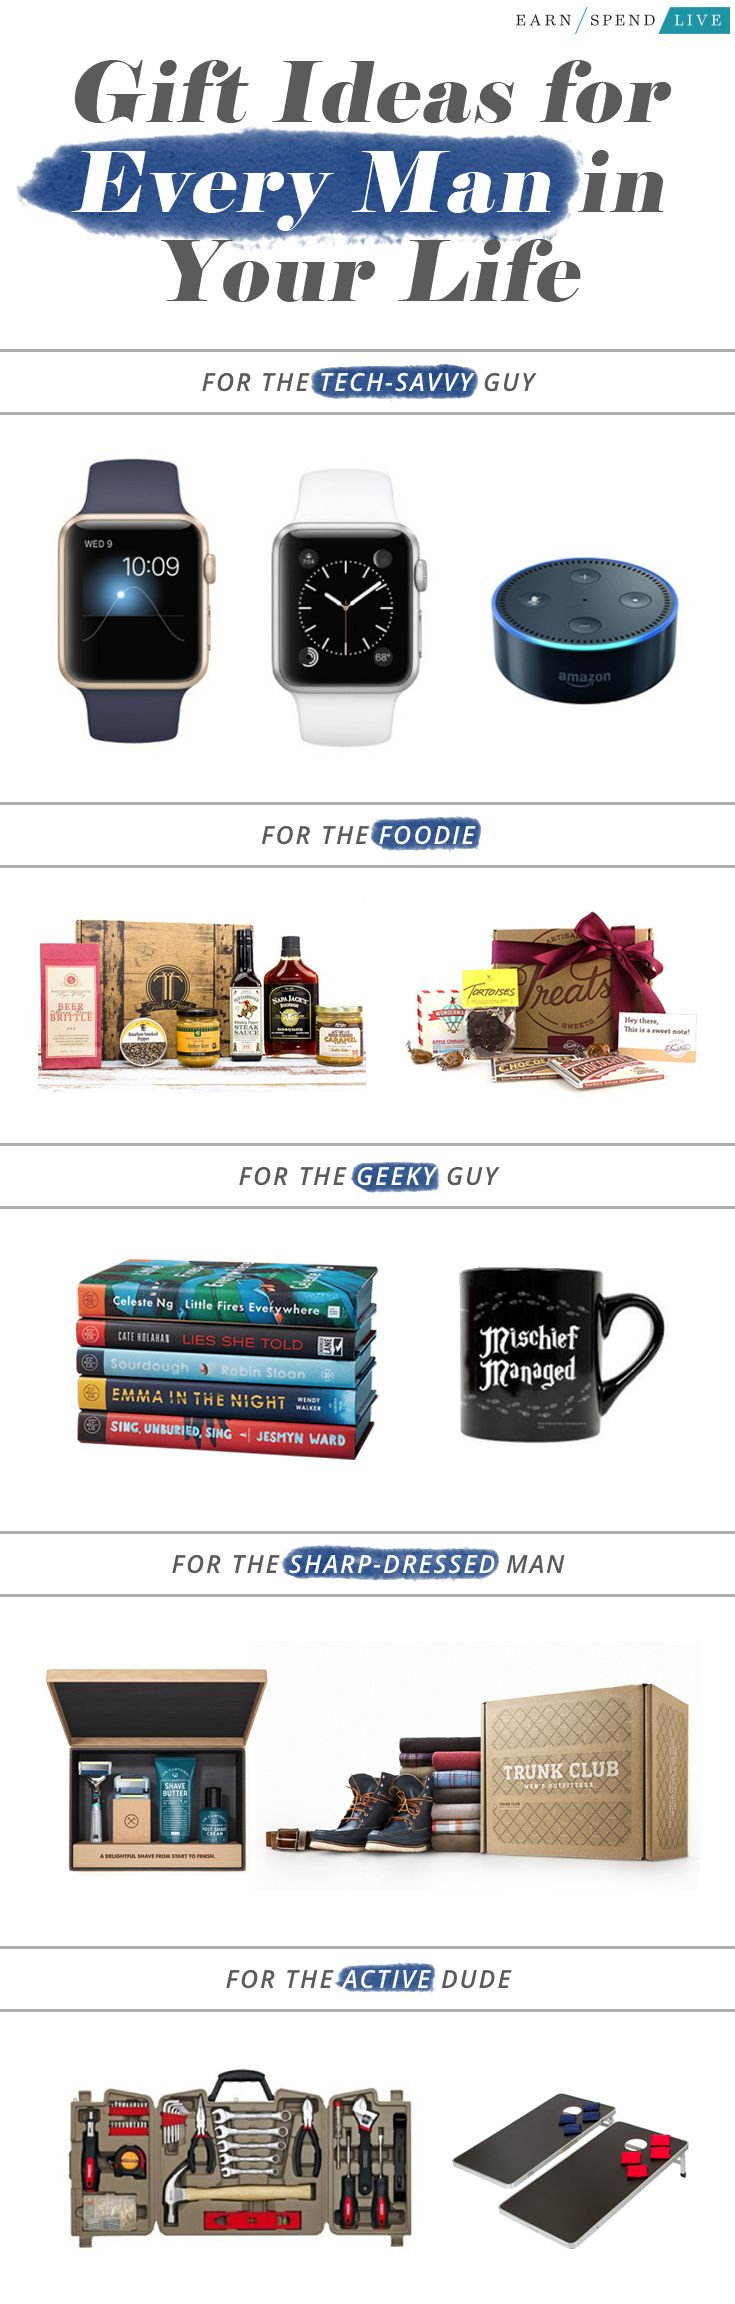 Gift Ideas for Every Man in Your Life, gifts for brothers, gift ideas for brother, gifts to give your brother, gifts for men, gift guide for men, christmas gifts for men, christmas gift guide, christmas gift guide for men, gifts for boys, gift ideas for boys, gift guide for boys, gift ideas for husband, gift guide for husbands, Best gifts for your husbands, husband christmas gifts.